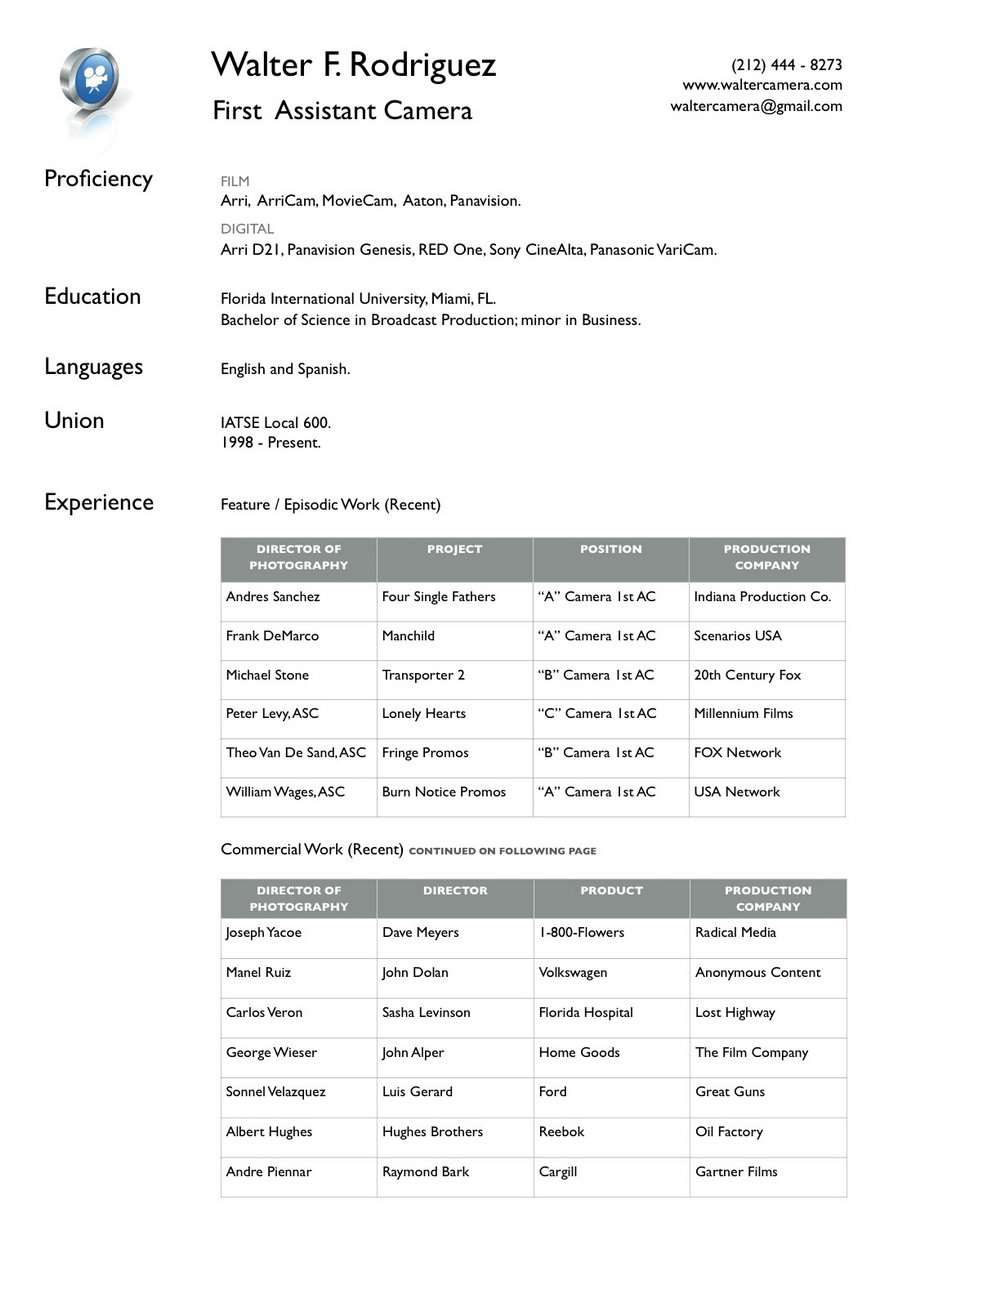 Resume Format Pdf Free Download